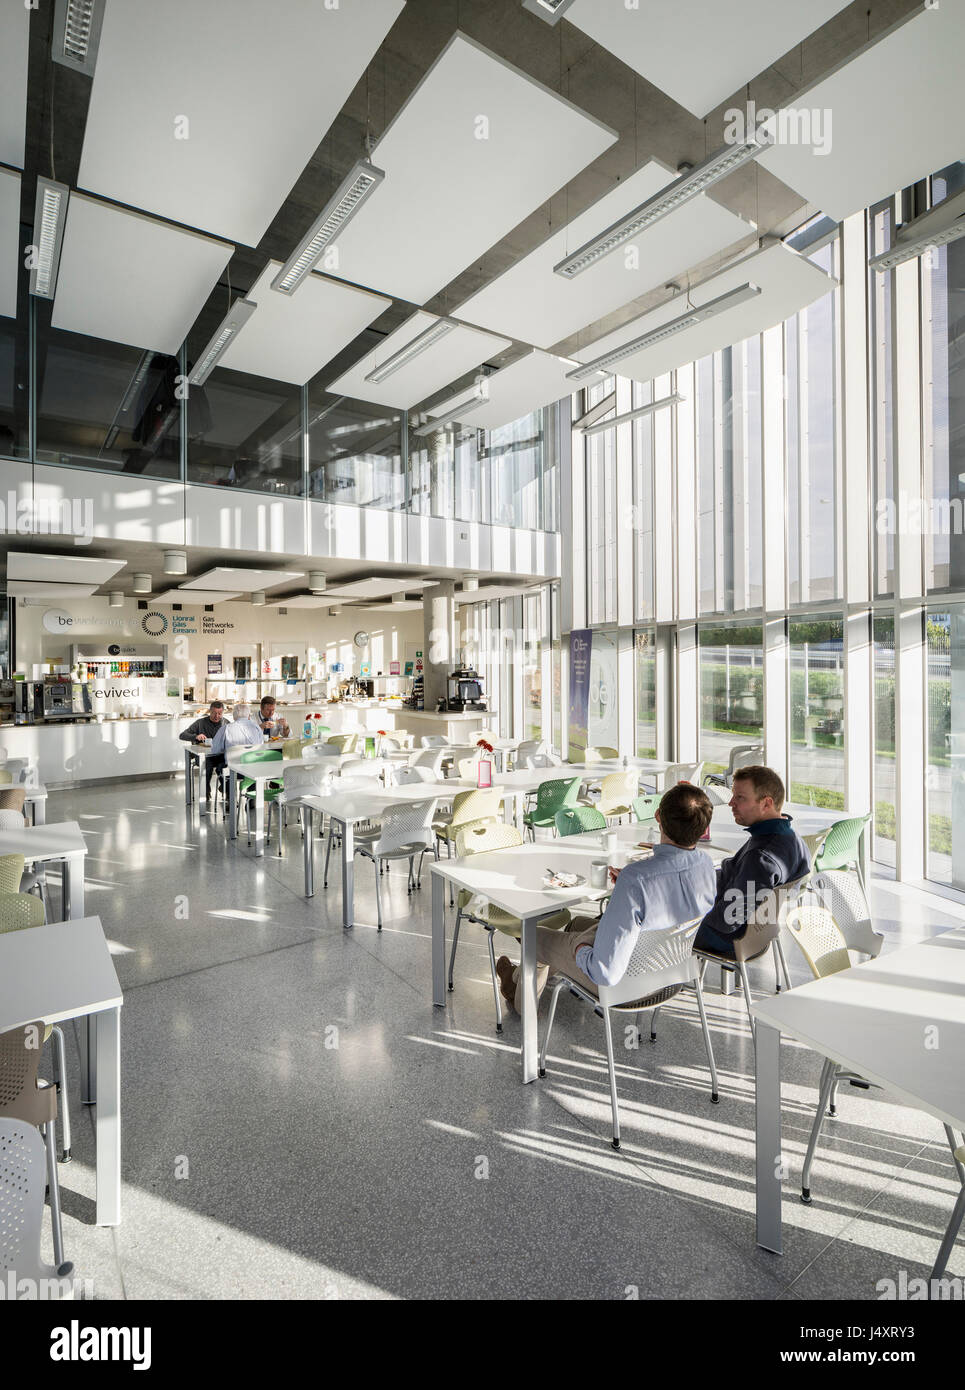 Canteen Cafe interior. Gas Networks Ireland, Dublin, Ireland. Architect: Denis Byrne Architects, 2015. - Stock Image